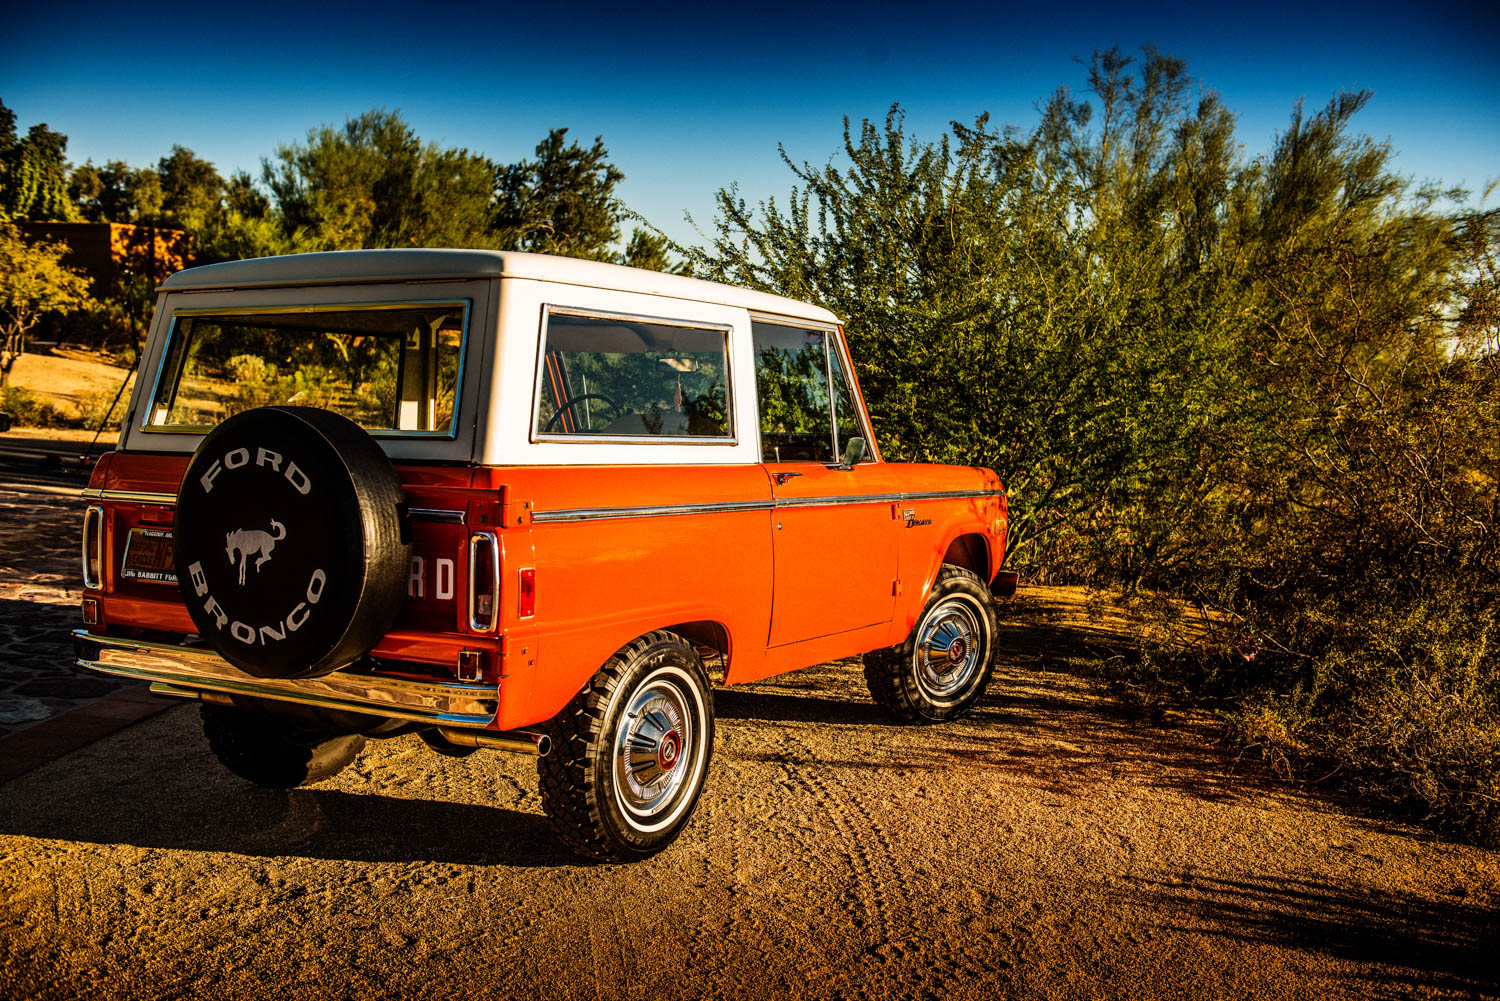 1977 Ford Bronco rear 3/4 desert